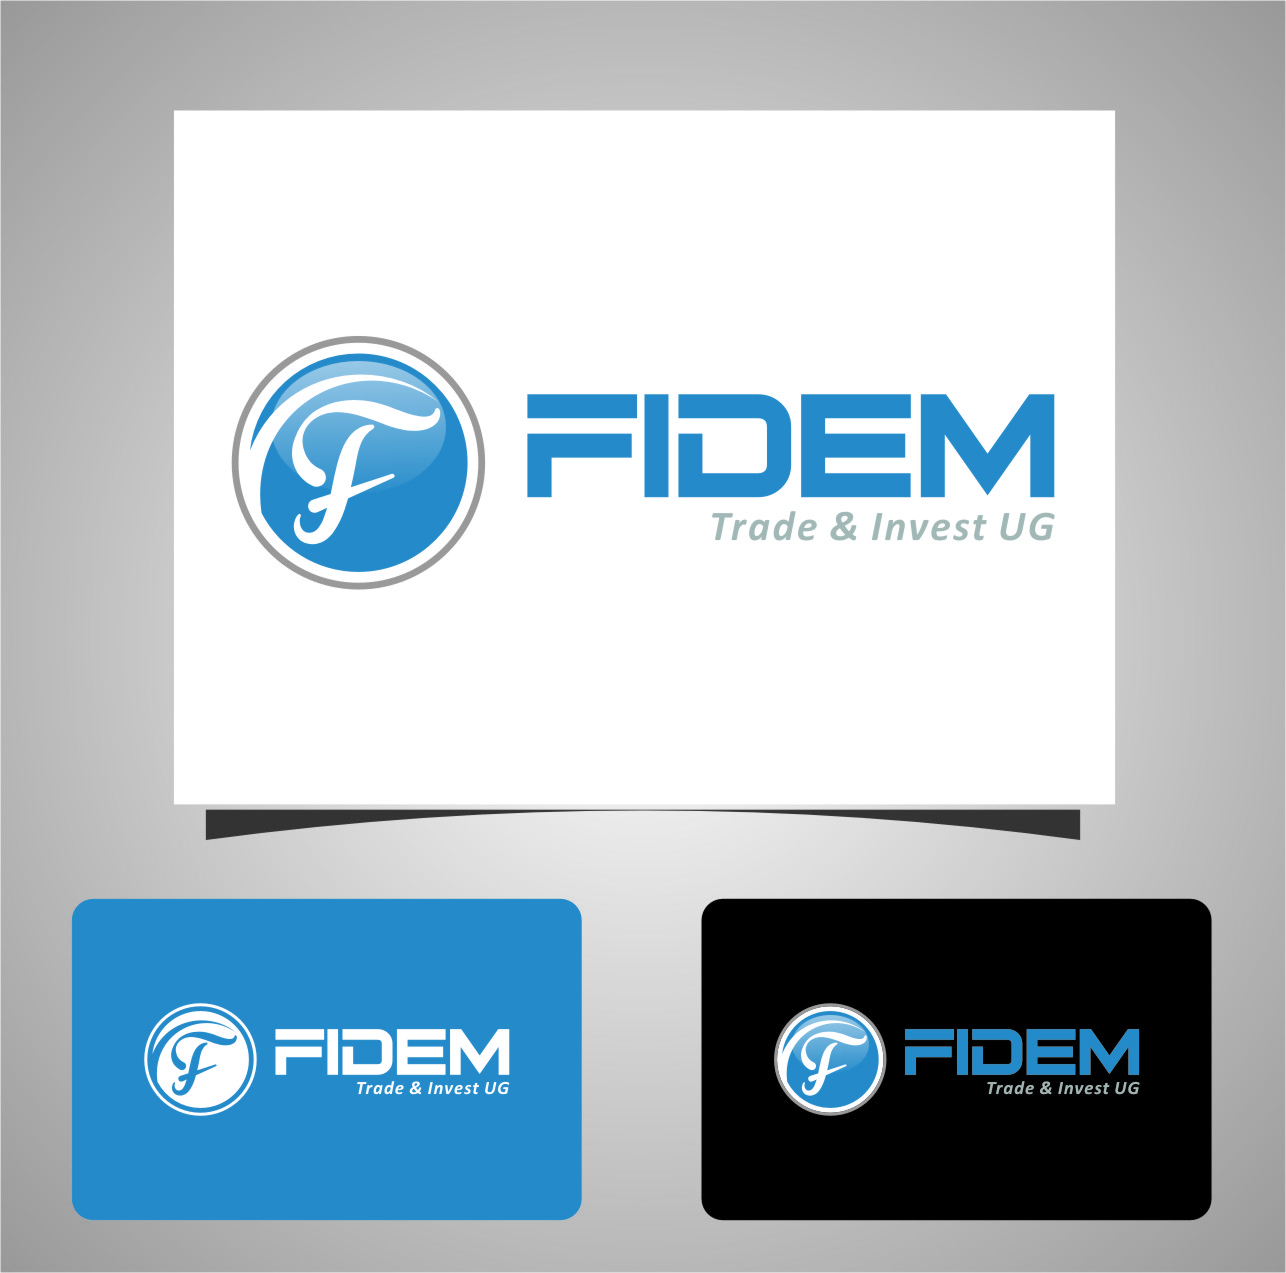 Logo Design by RasYa Muhammad Athaya - Entry No. 731 in the Logo Design Contest Professional Logo Design for FIDEM Trade & Invest UG.